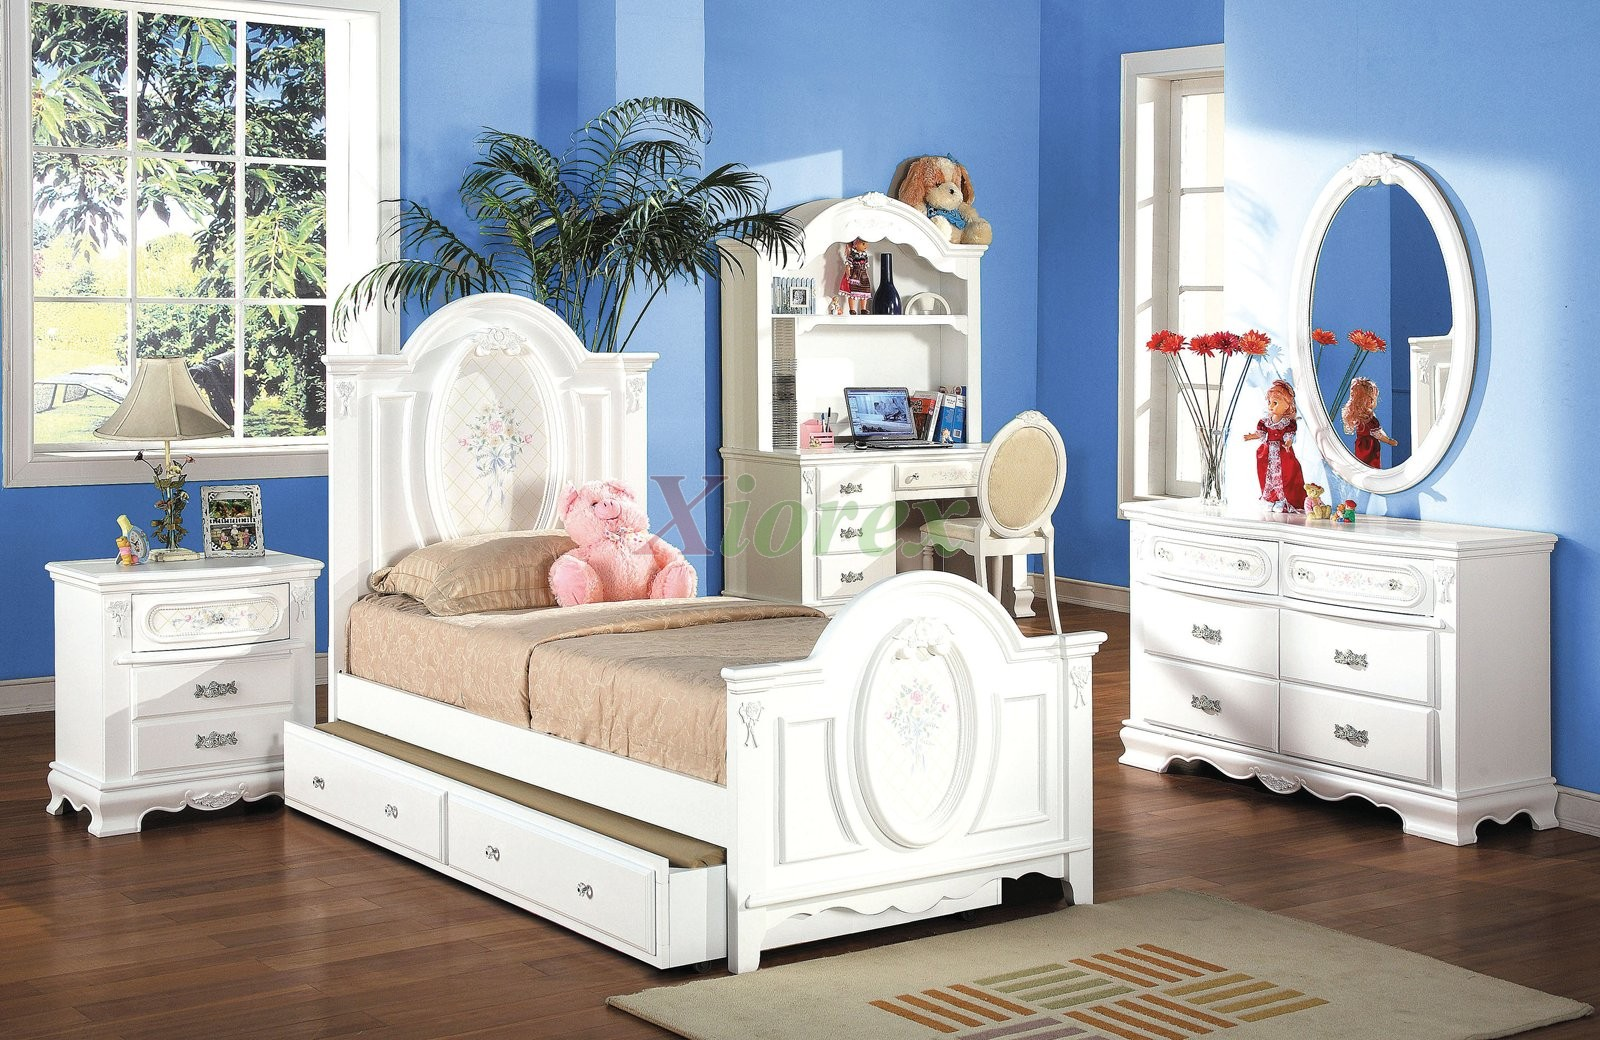 kids bedroom furniture set with trundle bed and hutch 174 | xiorex IDGVBXM